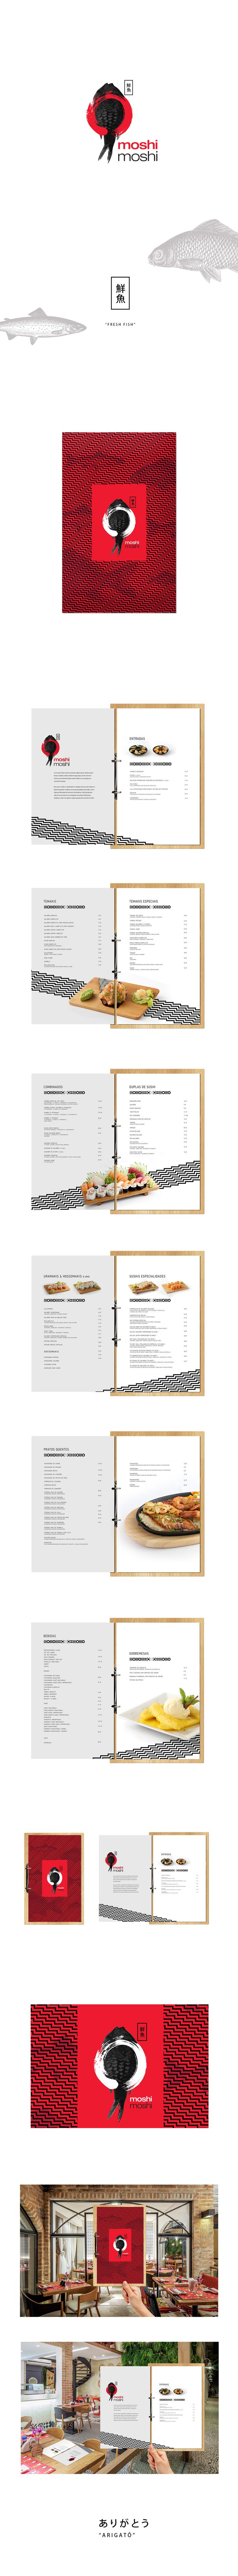 Moshi Moshi Japanese Restaurant Menu on Behance. Like the position and contrast between the red and black with the fish.